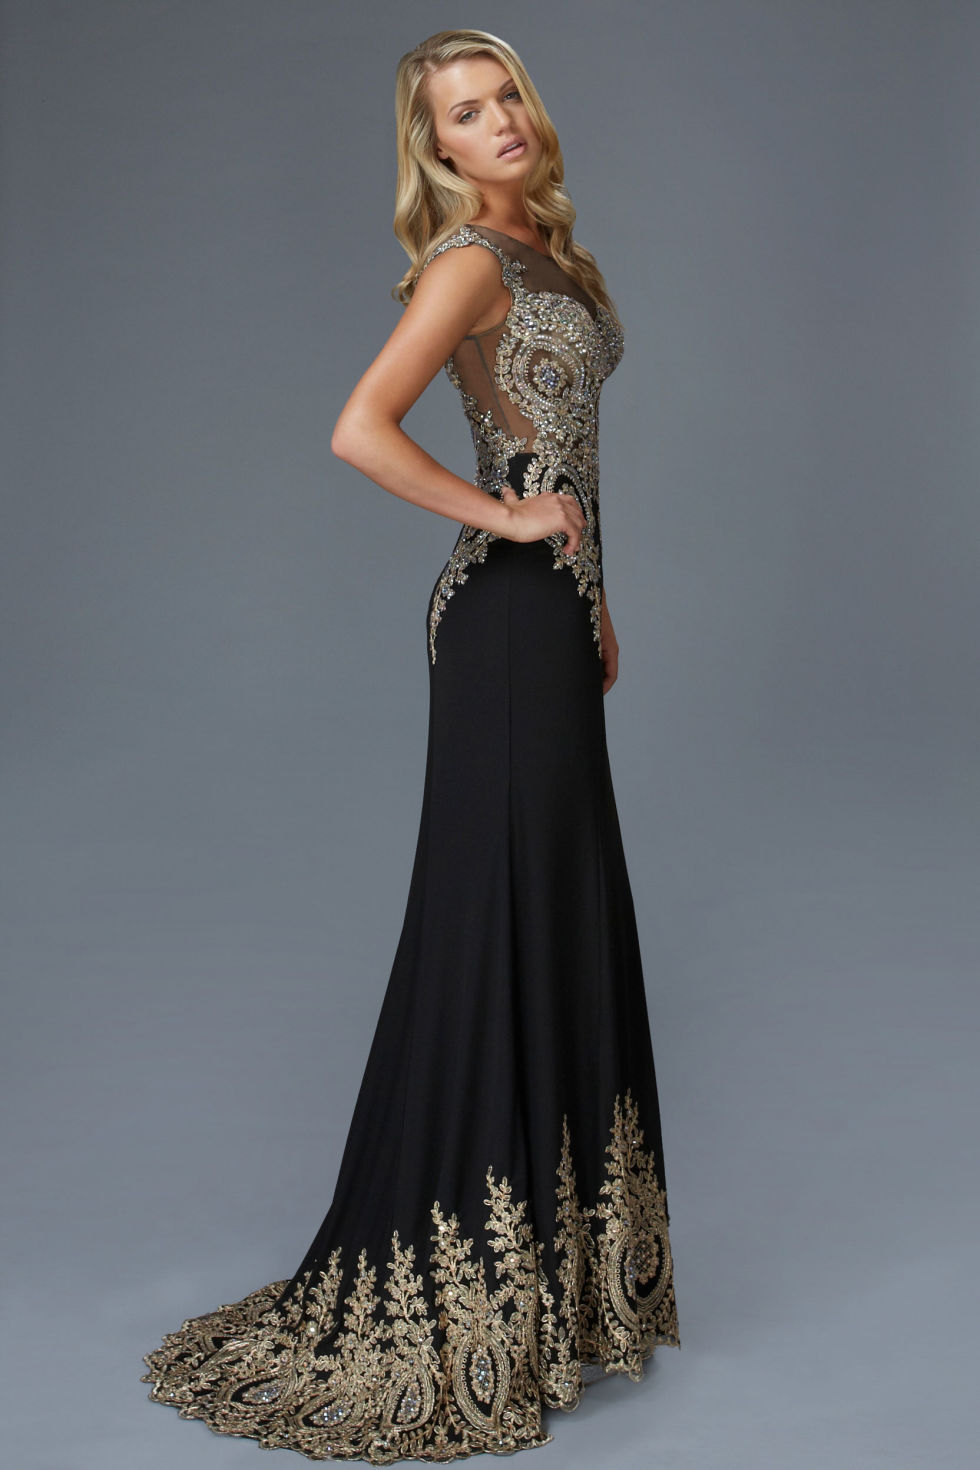 Black And Gold Prom Dress - Colorful Dress Images of Archive